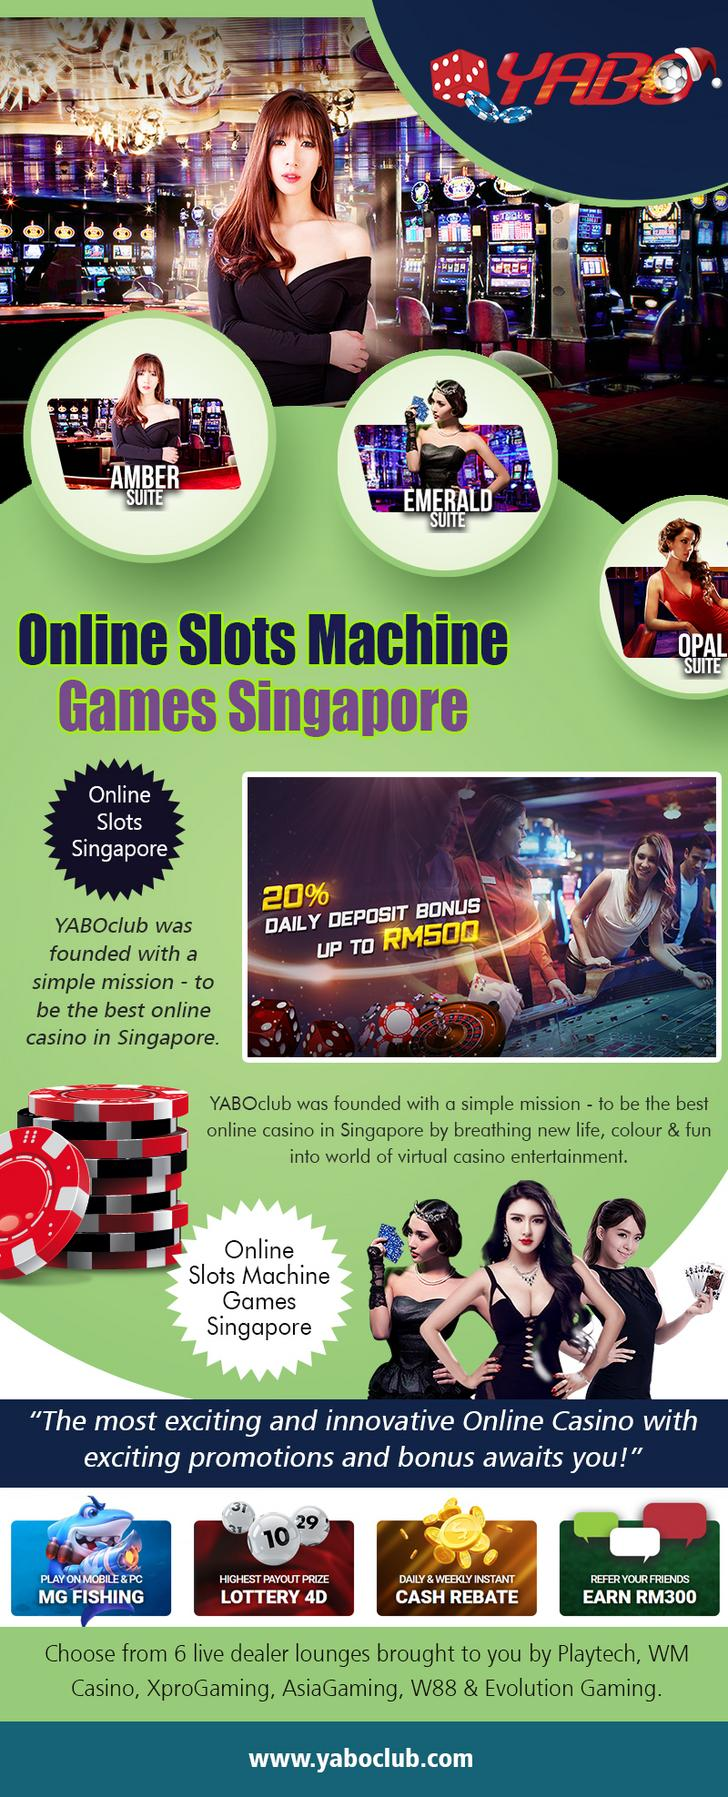 Stories By Malaysia Online Casino Contently